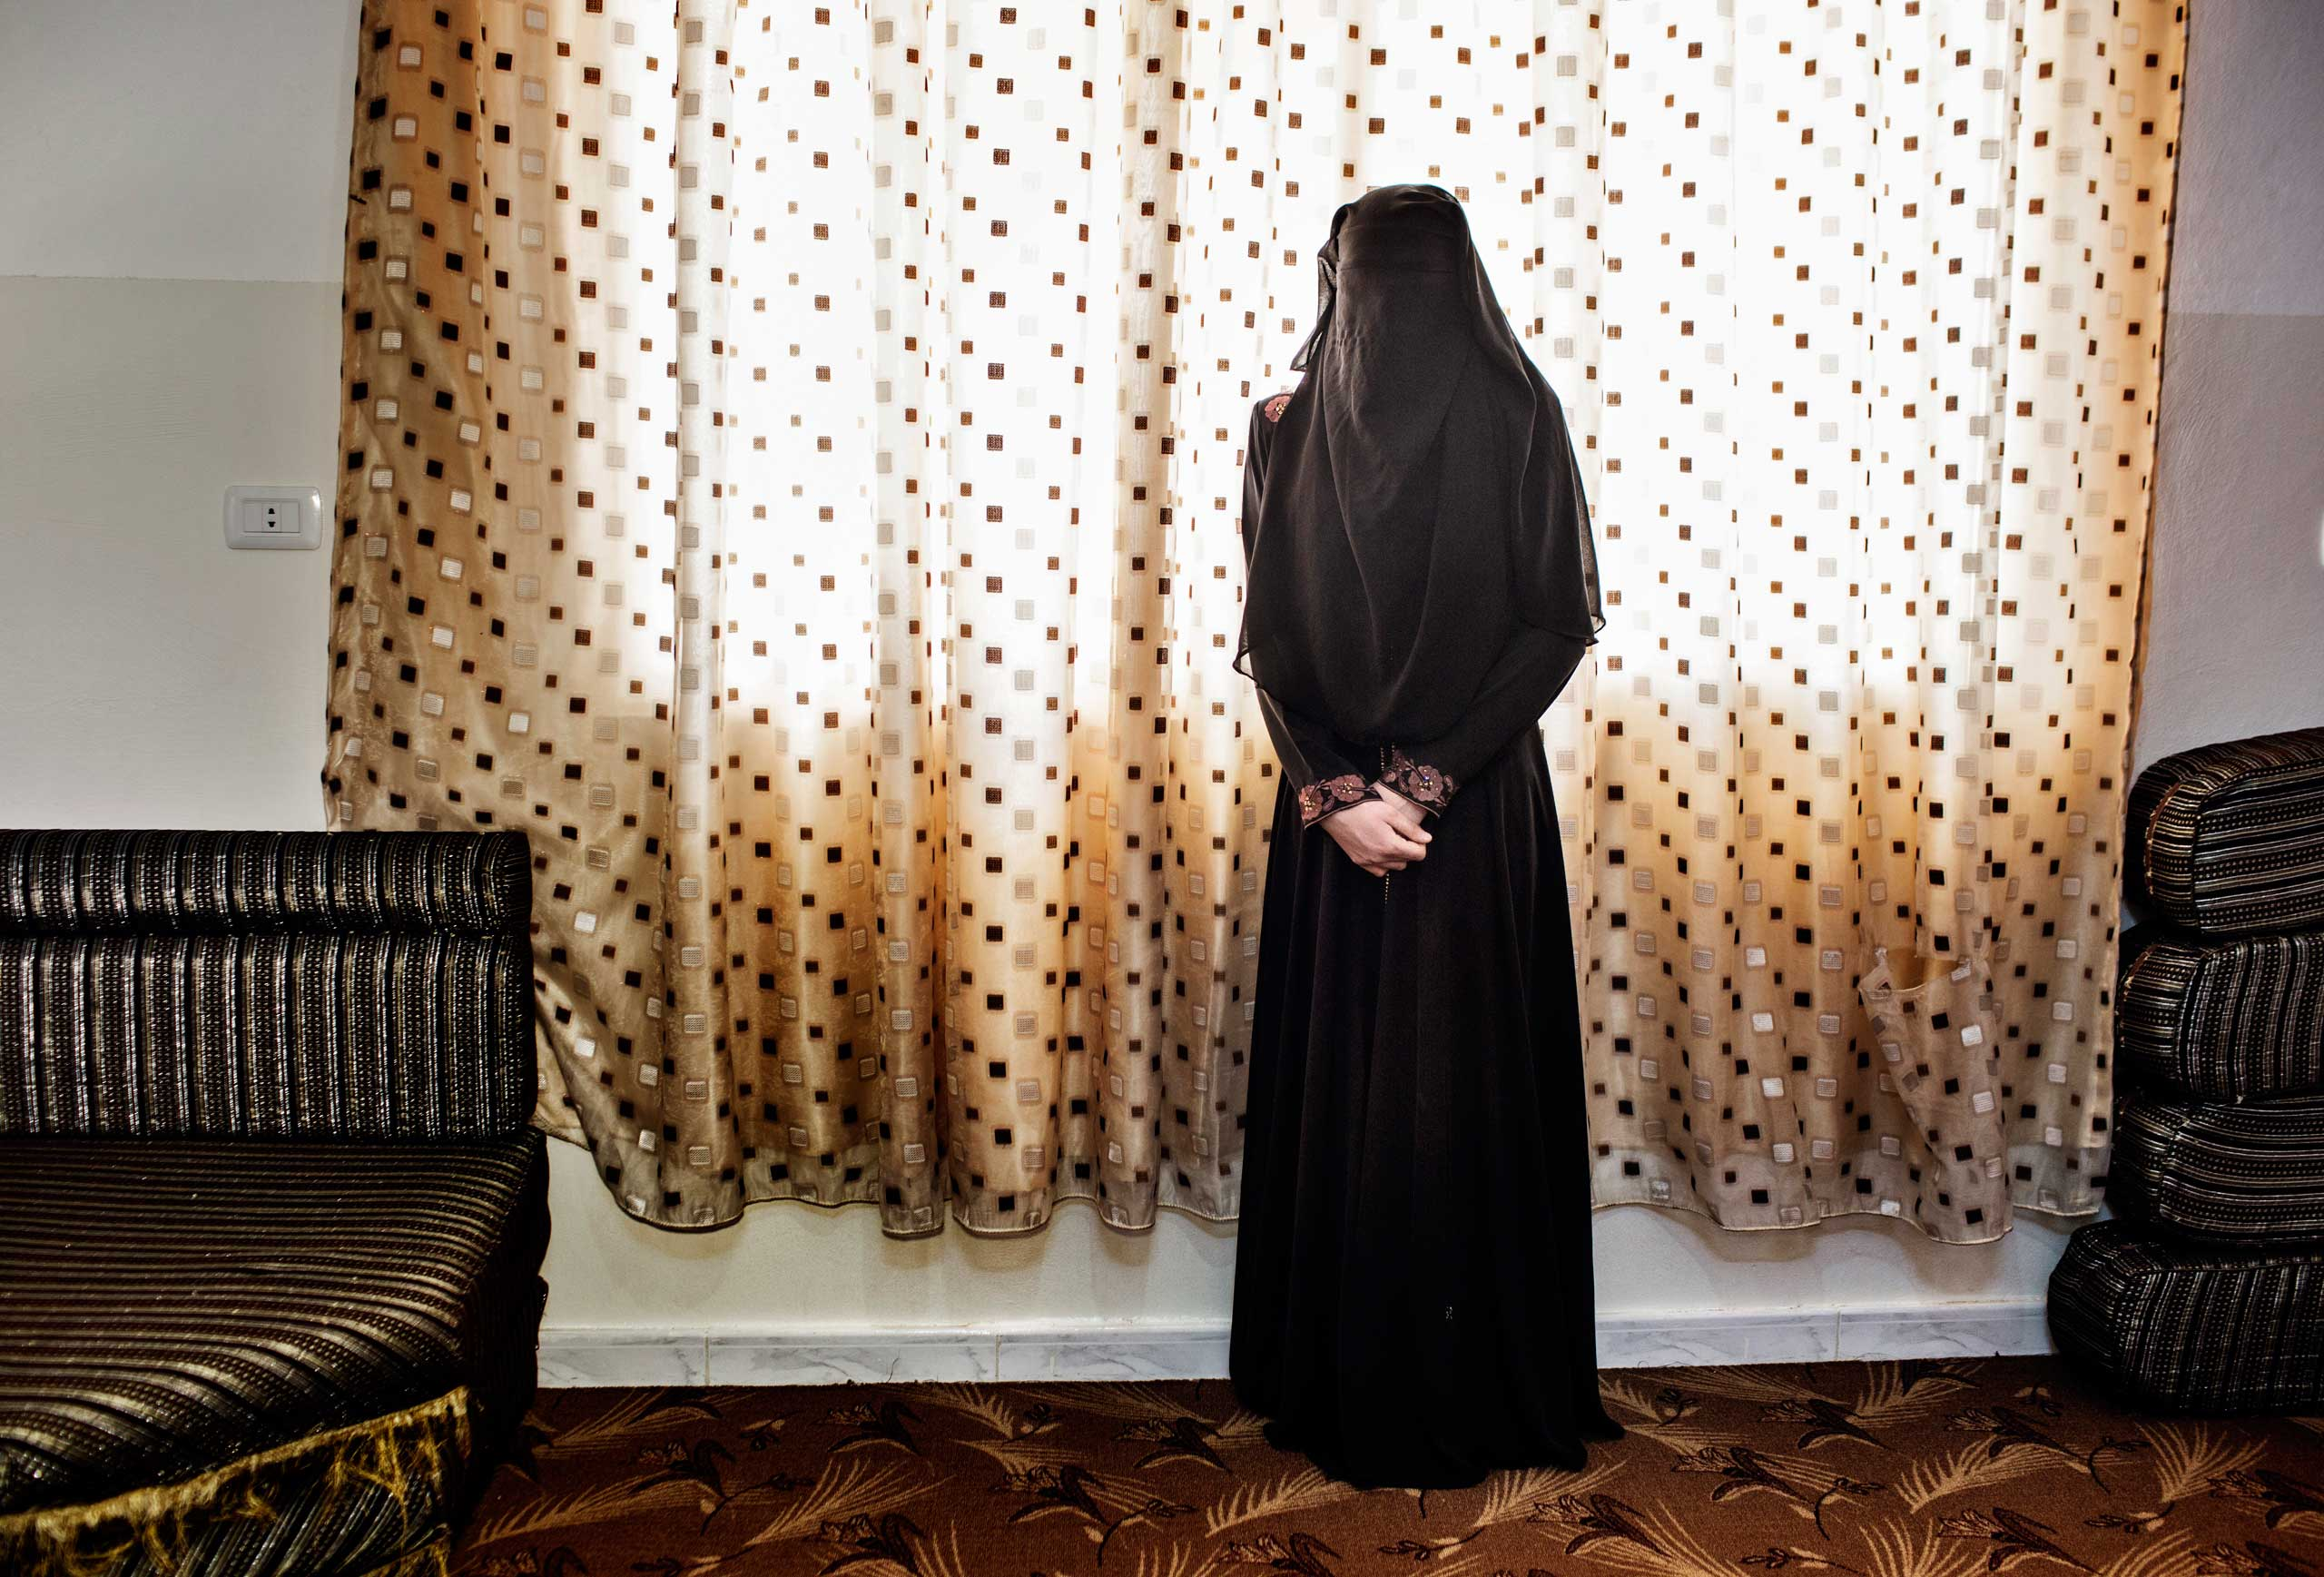 A Syrian refugee woman stands alone in the niqab she recently started wearing. Her 17 year old sister has just married, leaving her alone in the house with her widowed mother and four siblings. The marriage proposals are already coming to her. She had dreamt of finishing high school and becoming a teacher. Ramtha, Jordan, June 1, 2014.